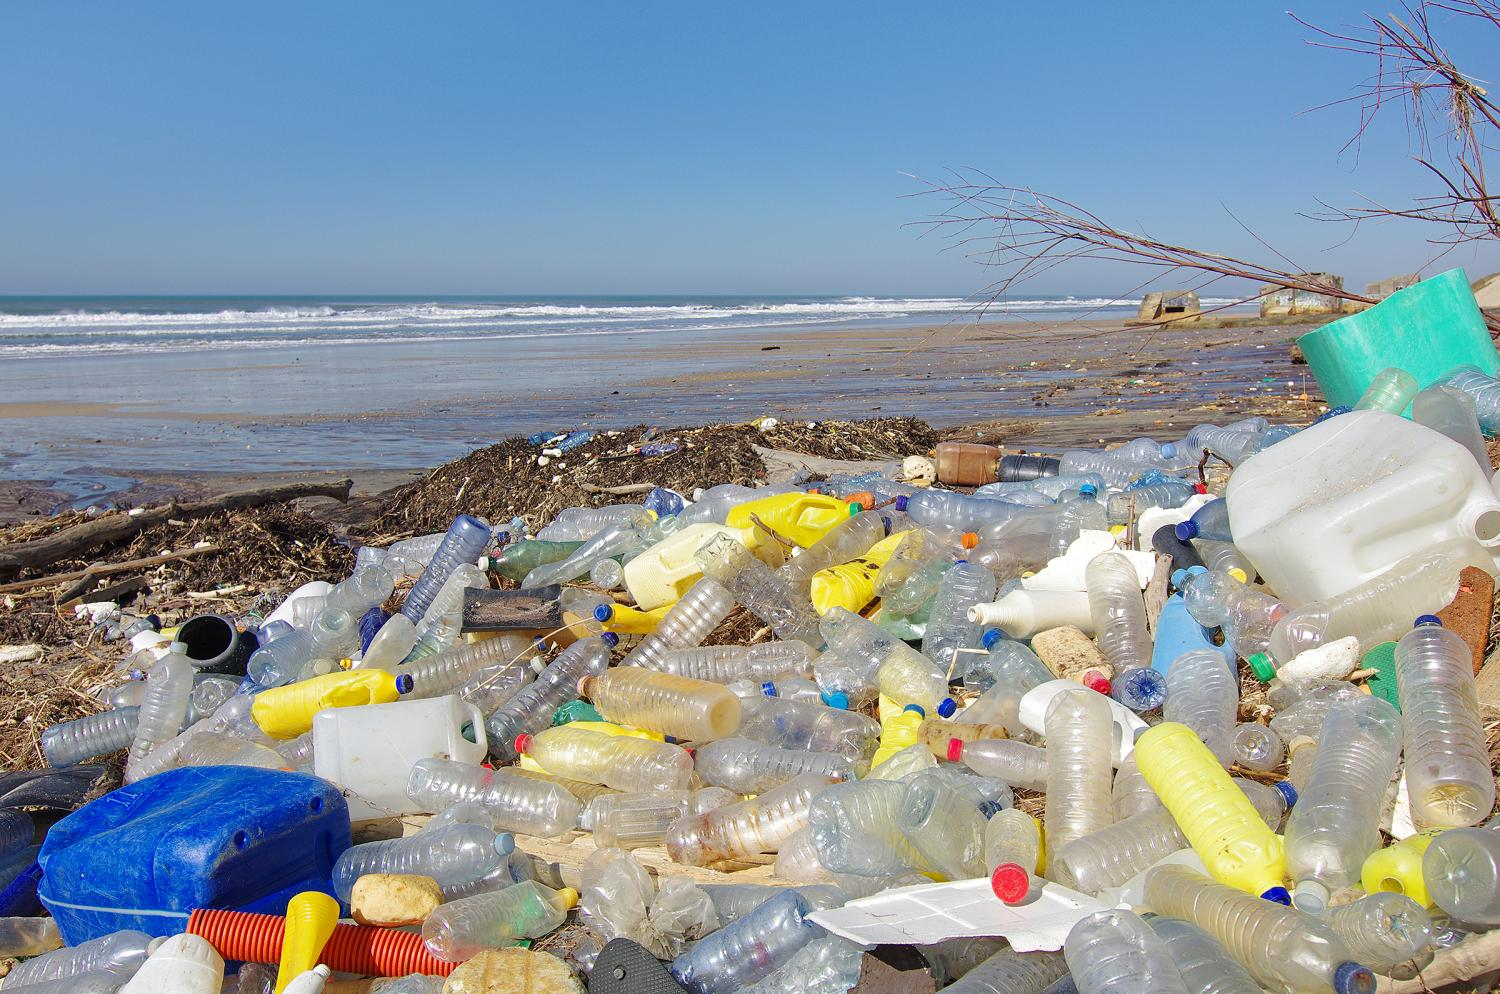 The ultimate solution to plastic pollution is to generate less of it. In the meantime, Purdue University researchers are working on new ways to recycle it into fuel.